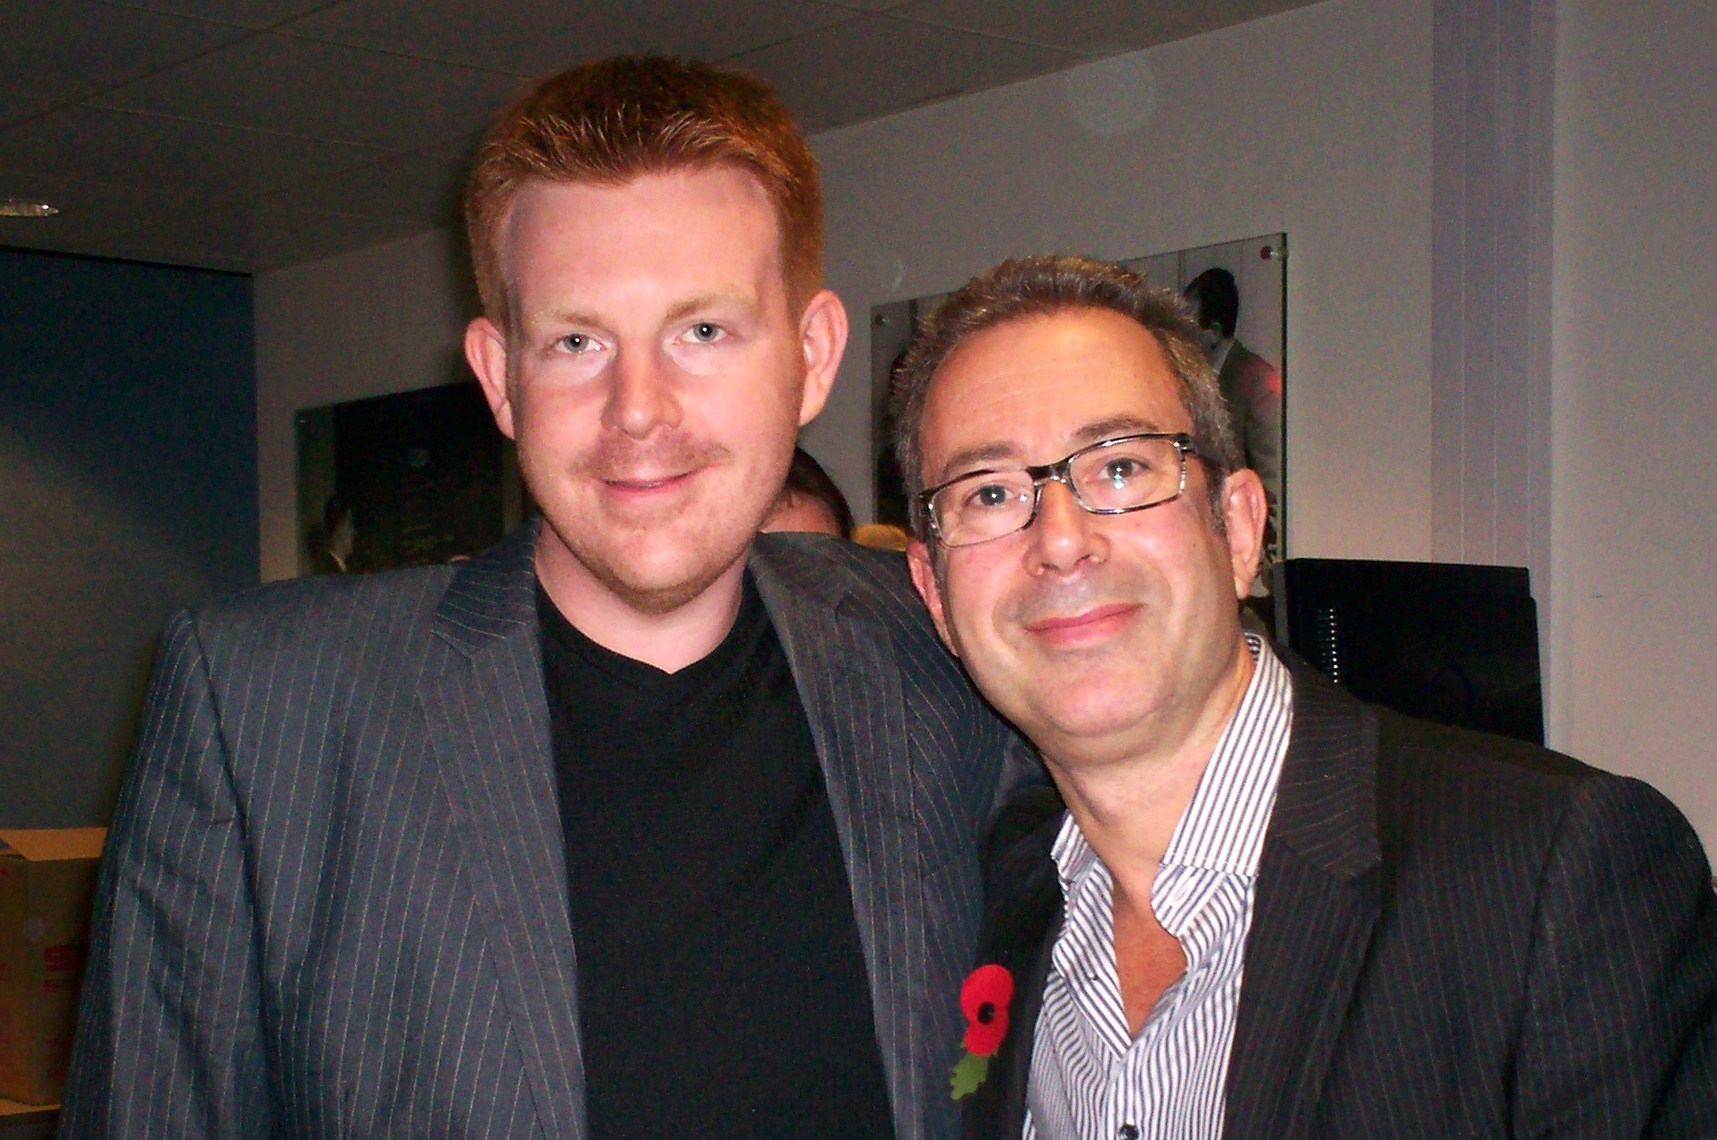 Enjoy Celebrity Radio's Ben Elton Exclusive BBC Life Story Interview…. Ben is one of Belfield's favourite writers and comedians. Alex has interviewed Elton many times […]